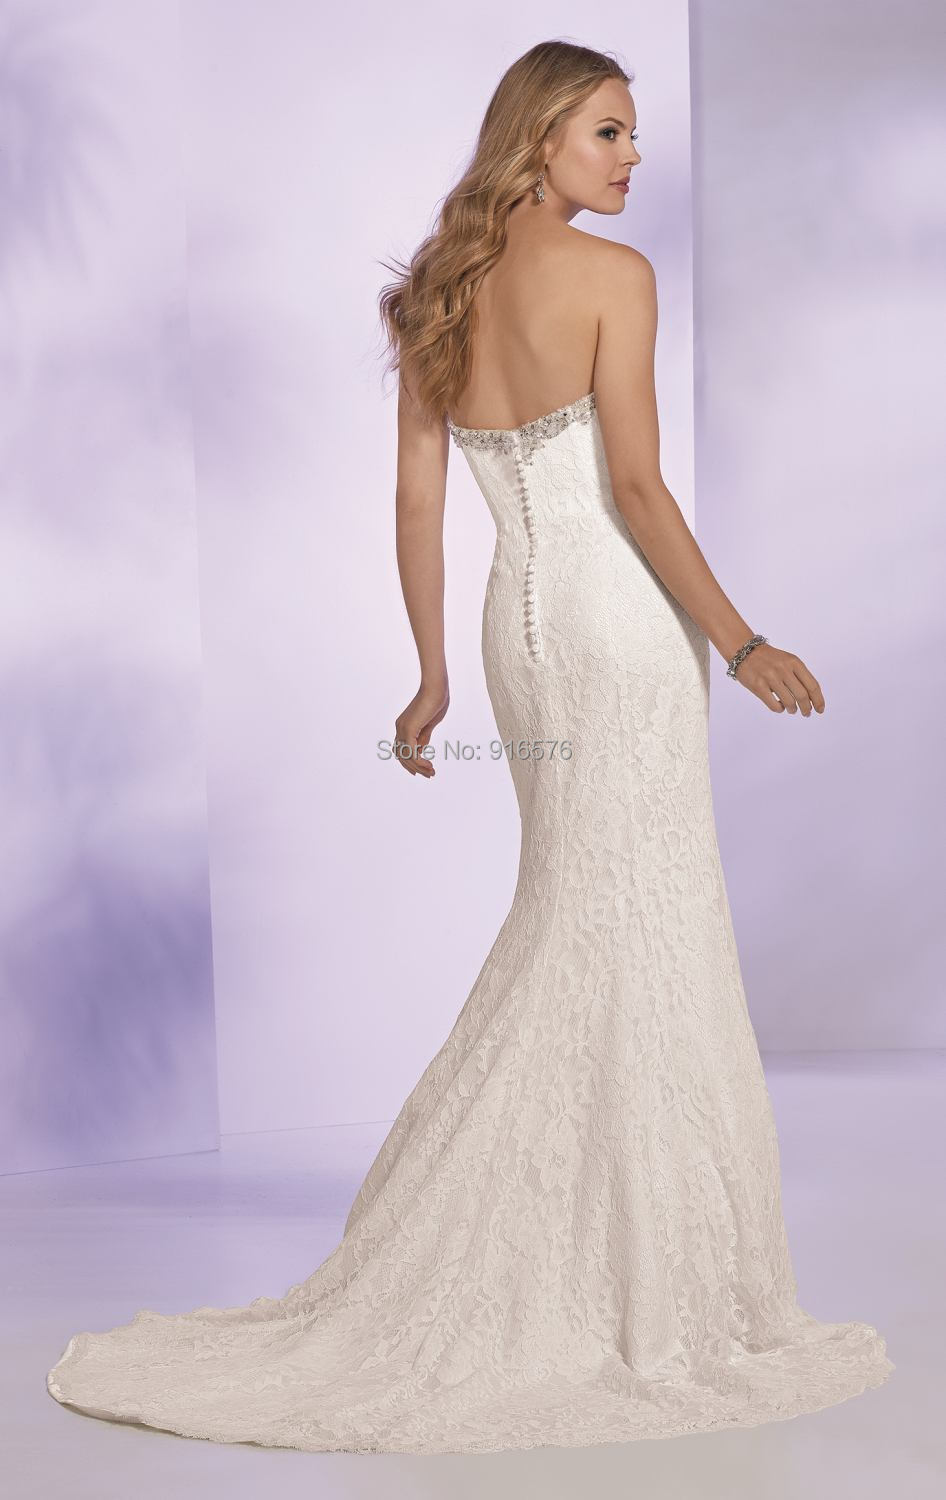 Refined Lace Wedding Gown Sweetheart Neckline with beaded Perfect Fitting  Shape Bride Dresses With Beaded Belt Chapel Train-in Wedding Dresses from  Weddings ... 8829e63eb1e2